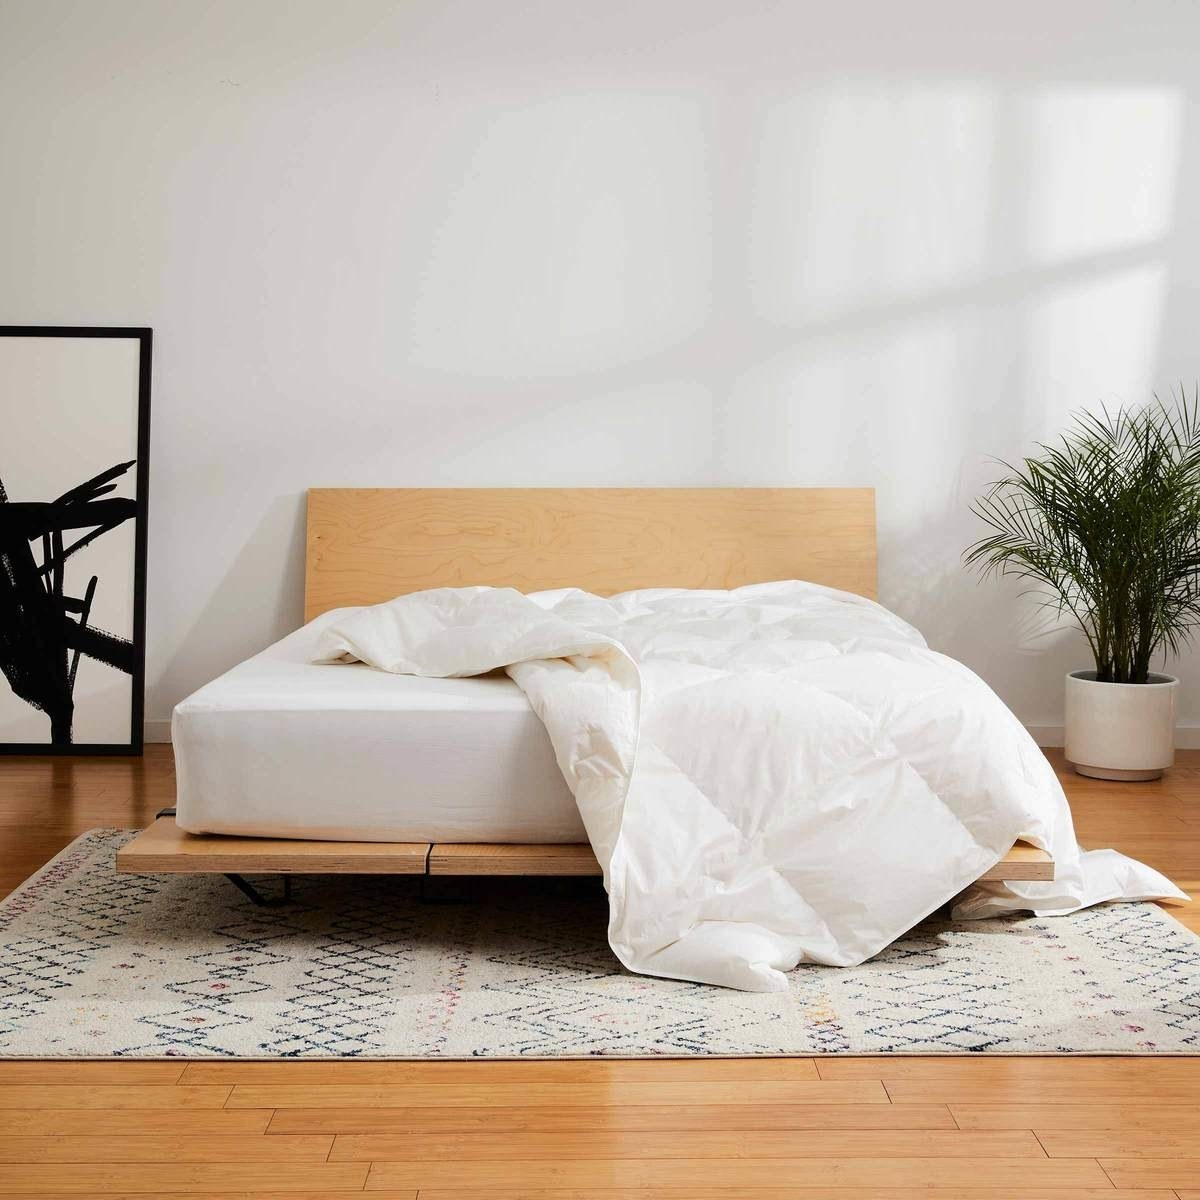 the down alternative comforter on a bed